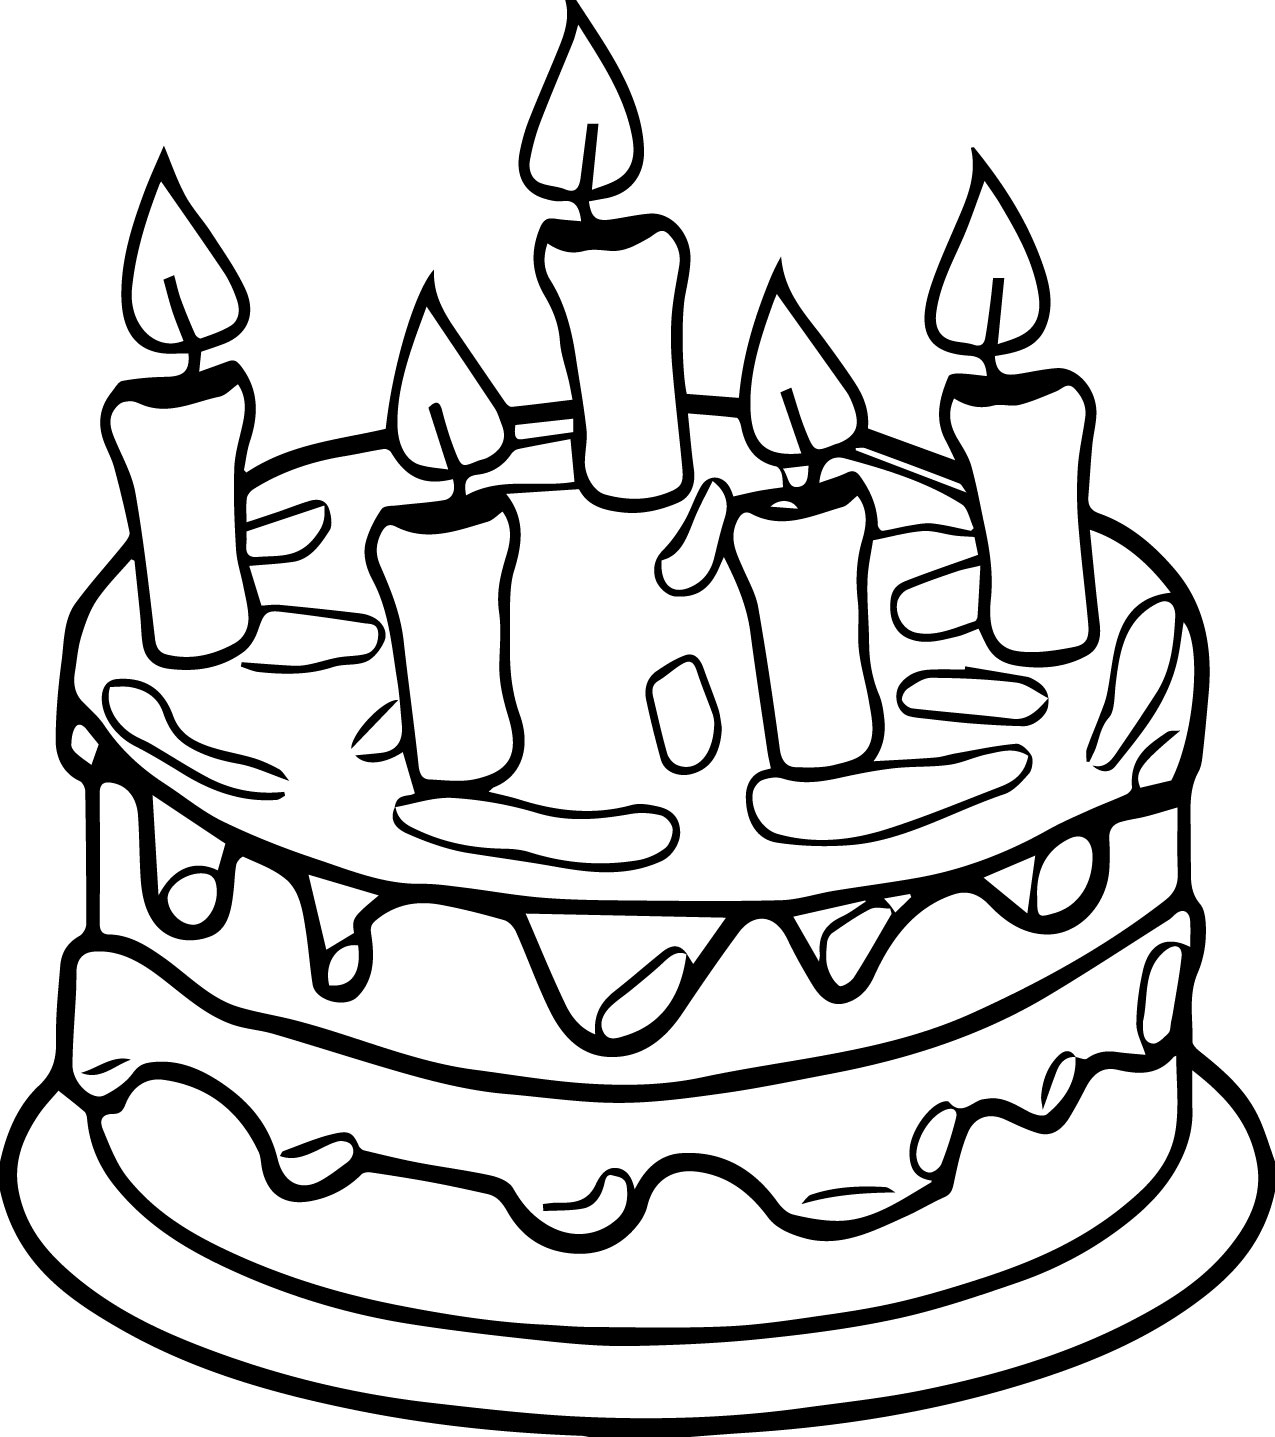 Birthday cake candle coloring page for Birthday coloring page